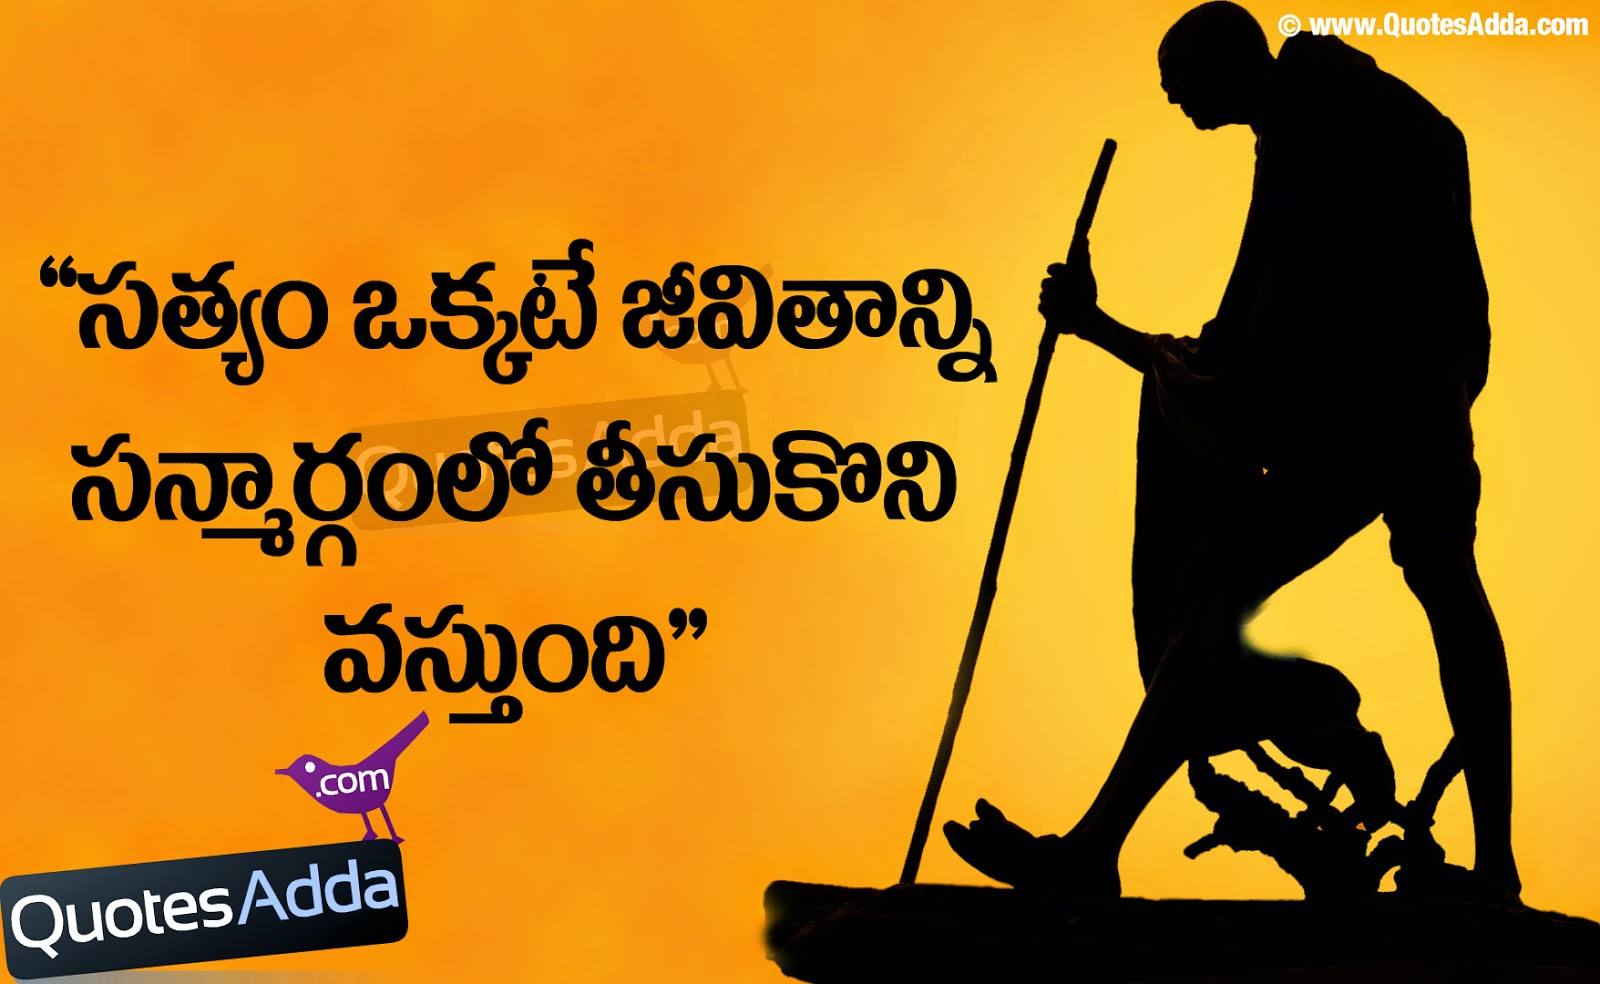 The Truth Of Life Quotes Gandhi Quotes On Life Telugu Images